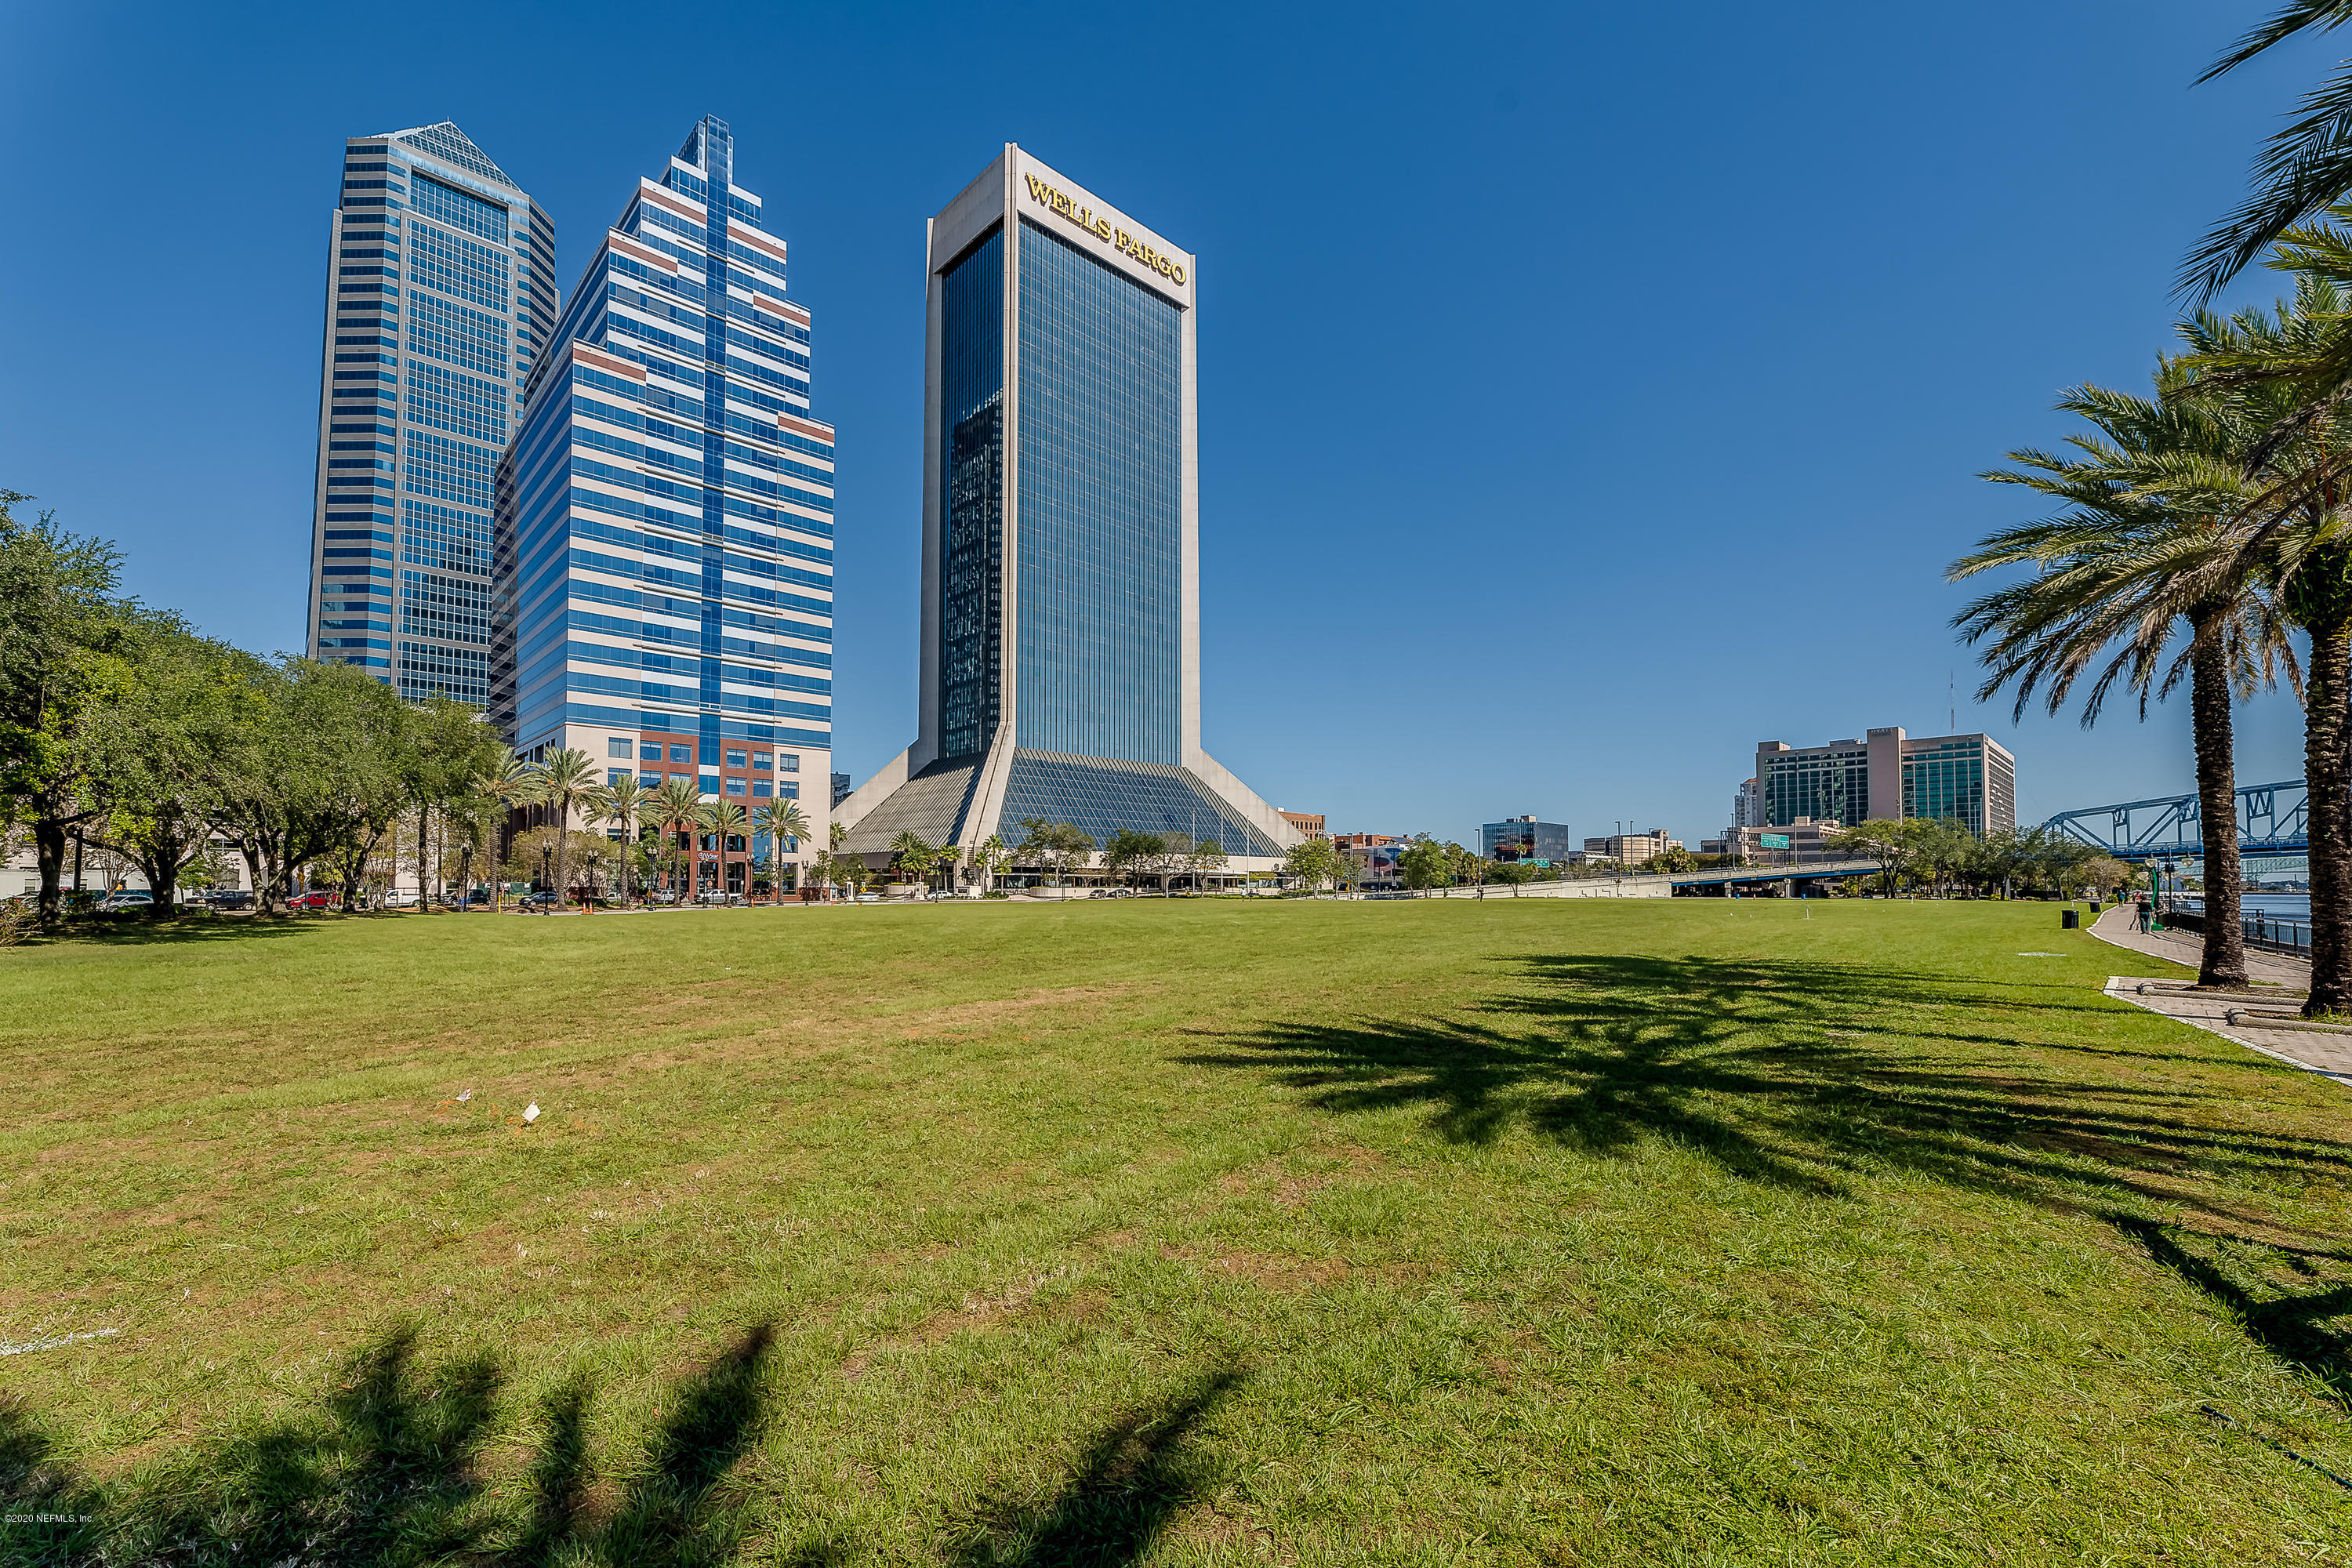 311 ASHLEY, JACKSONVILLE, FLORIDA 32202, 1 Bedroom Bedrooms, ,1 BathroomBathrooms,Residential,For sale,ASHLEY,1081685